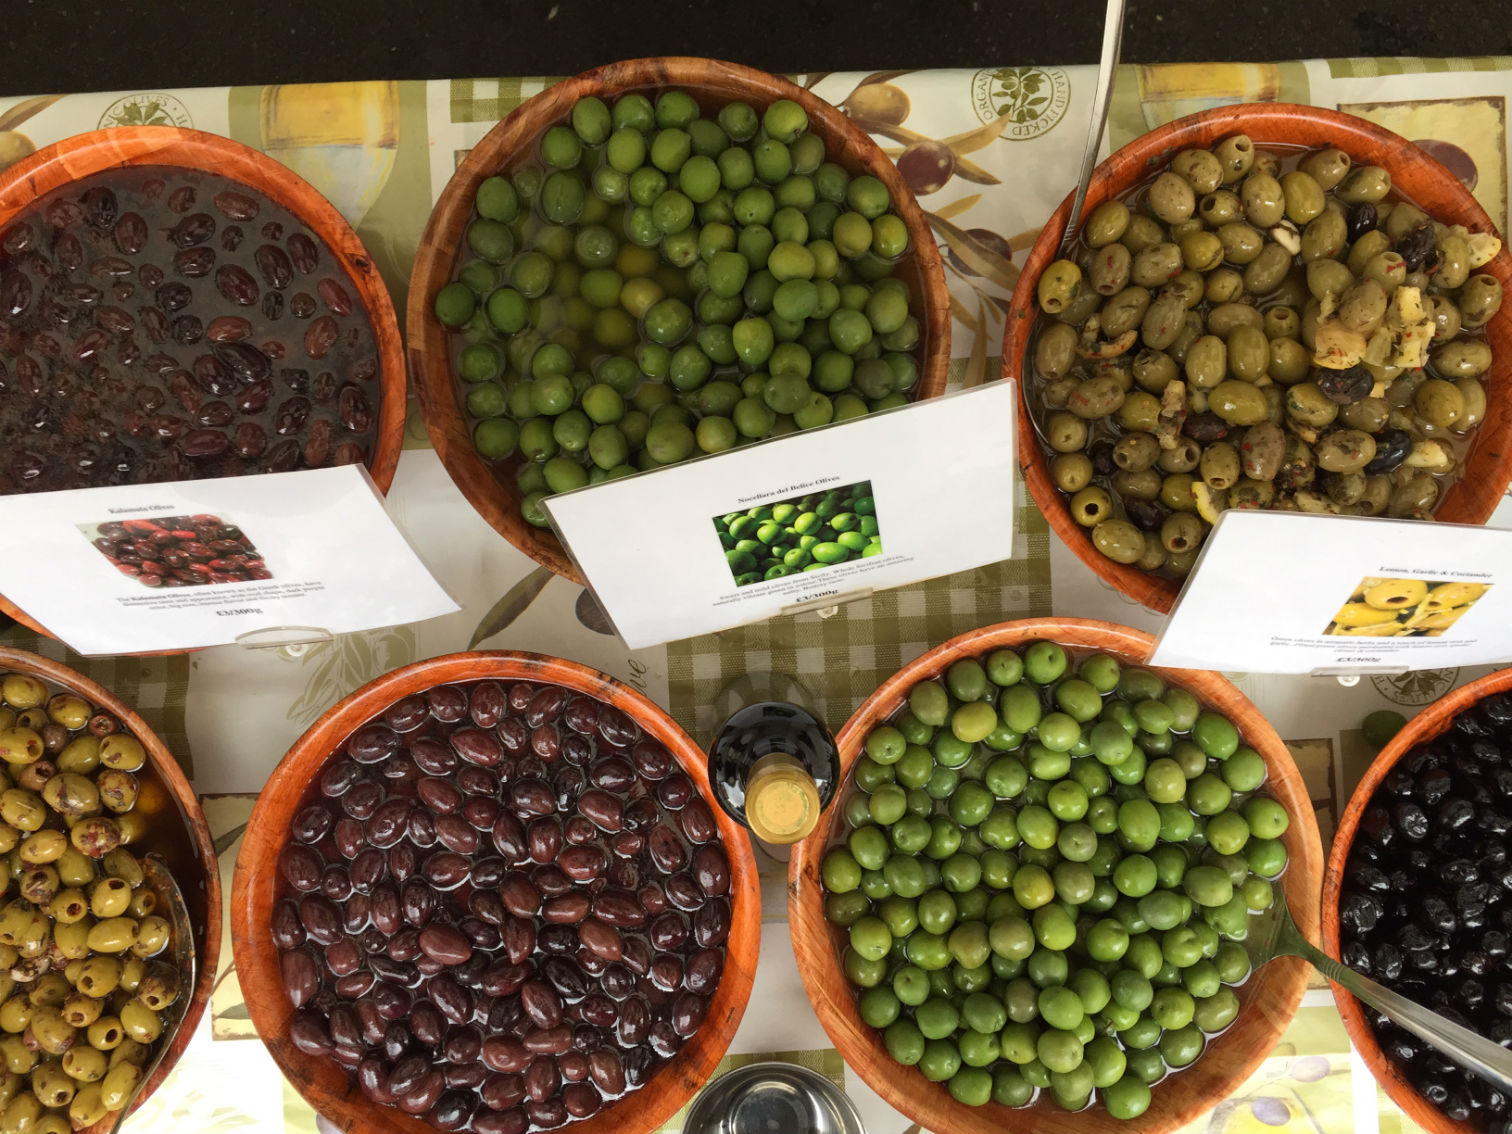 'Halkidiki are large, pale green olives from Greece with a full flavour.' Photo: SE